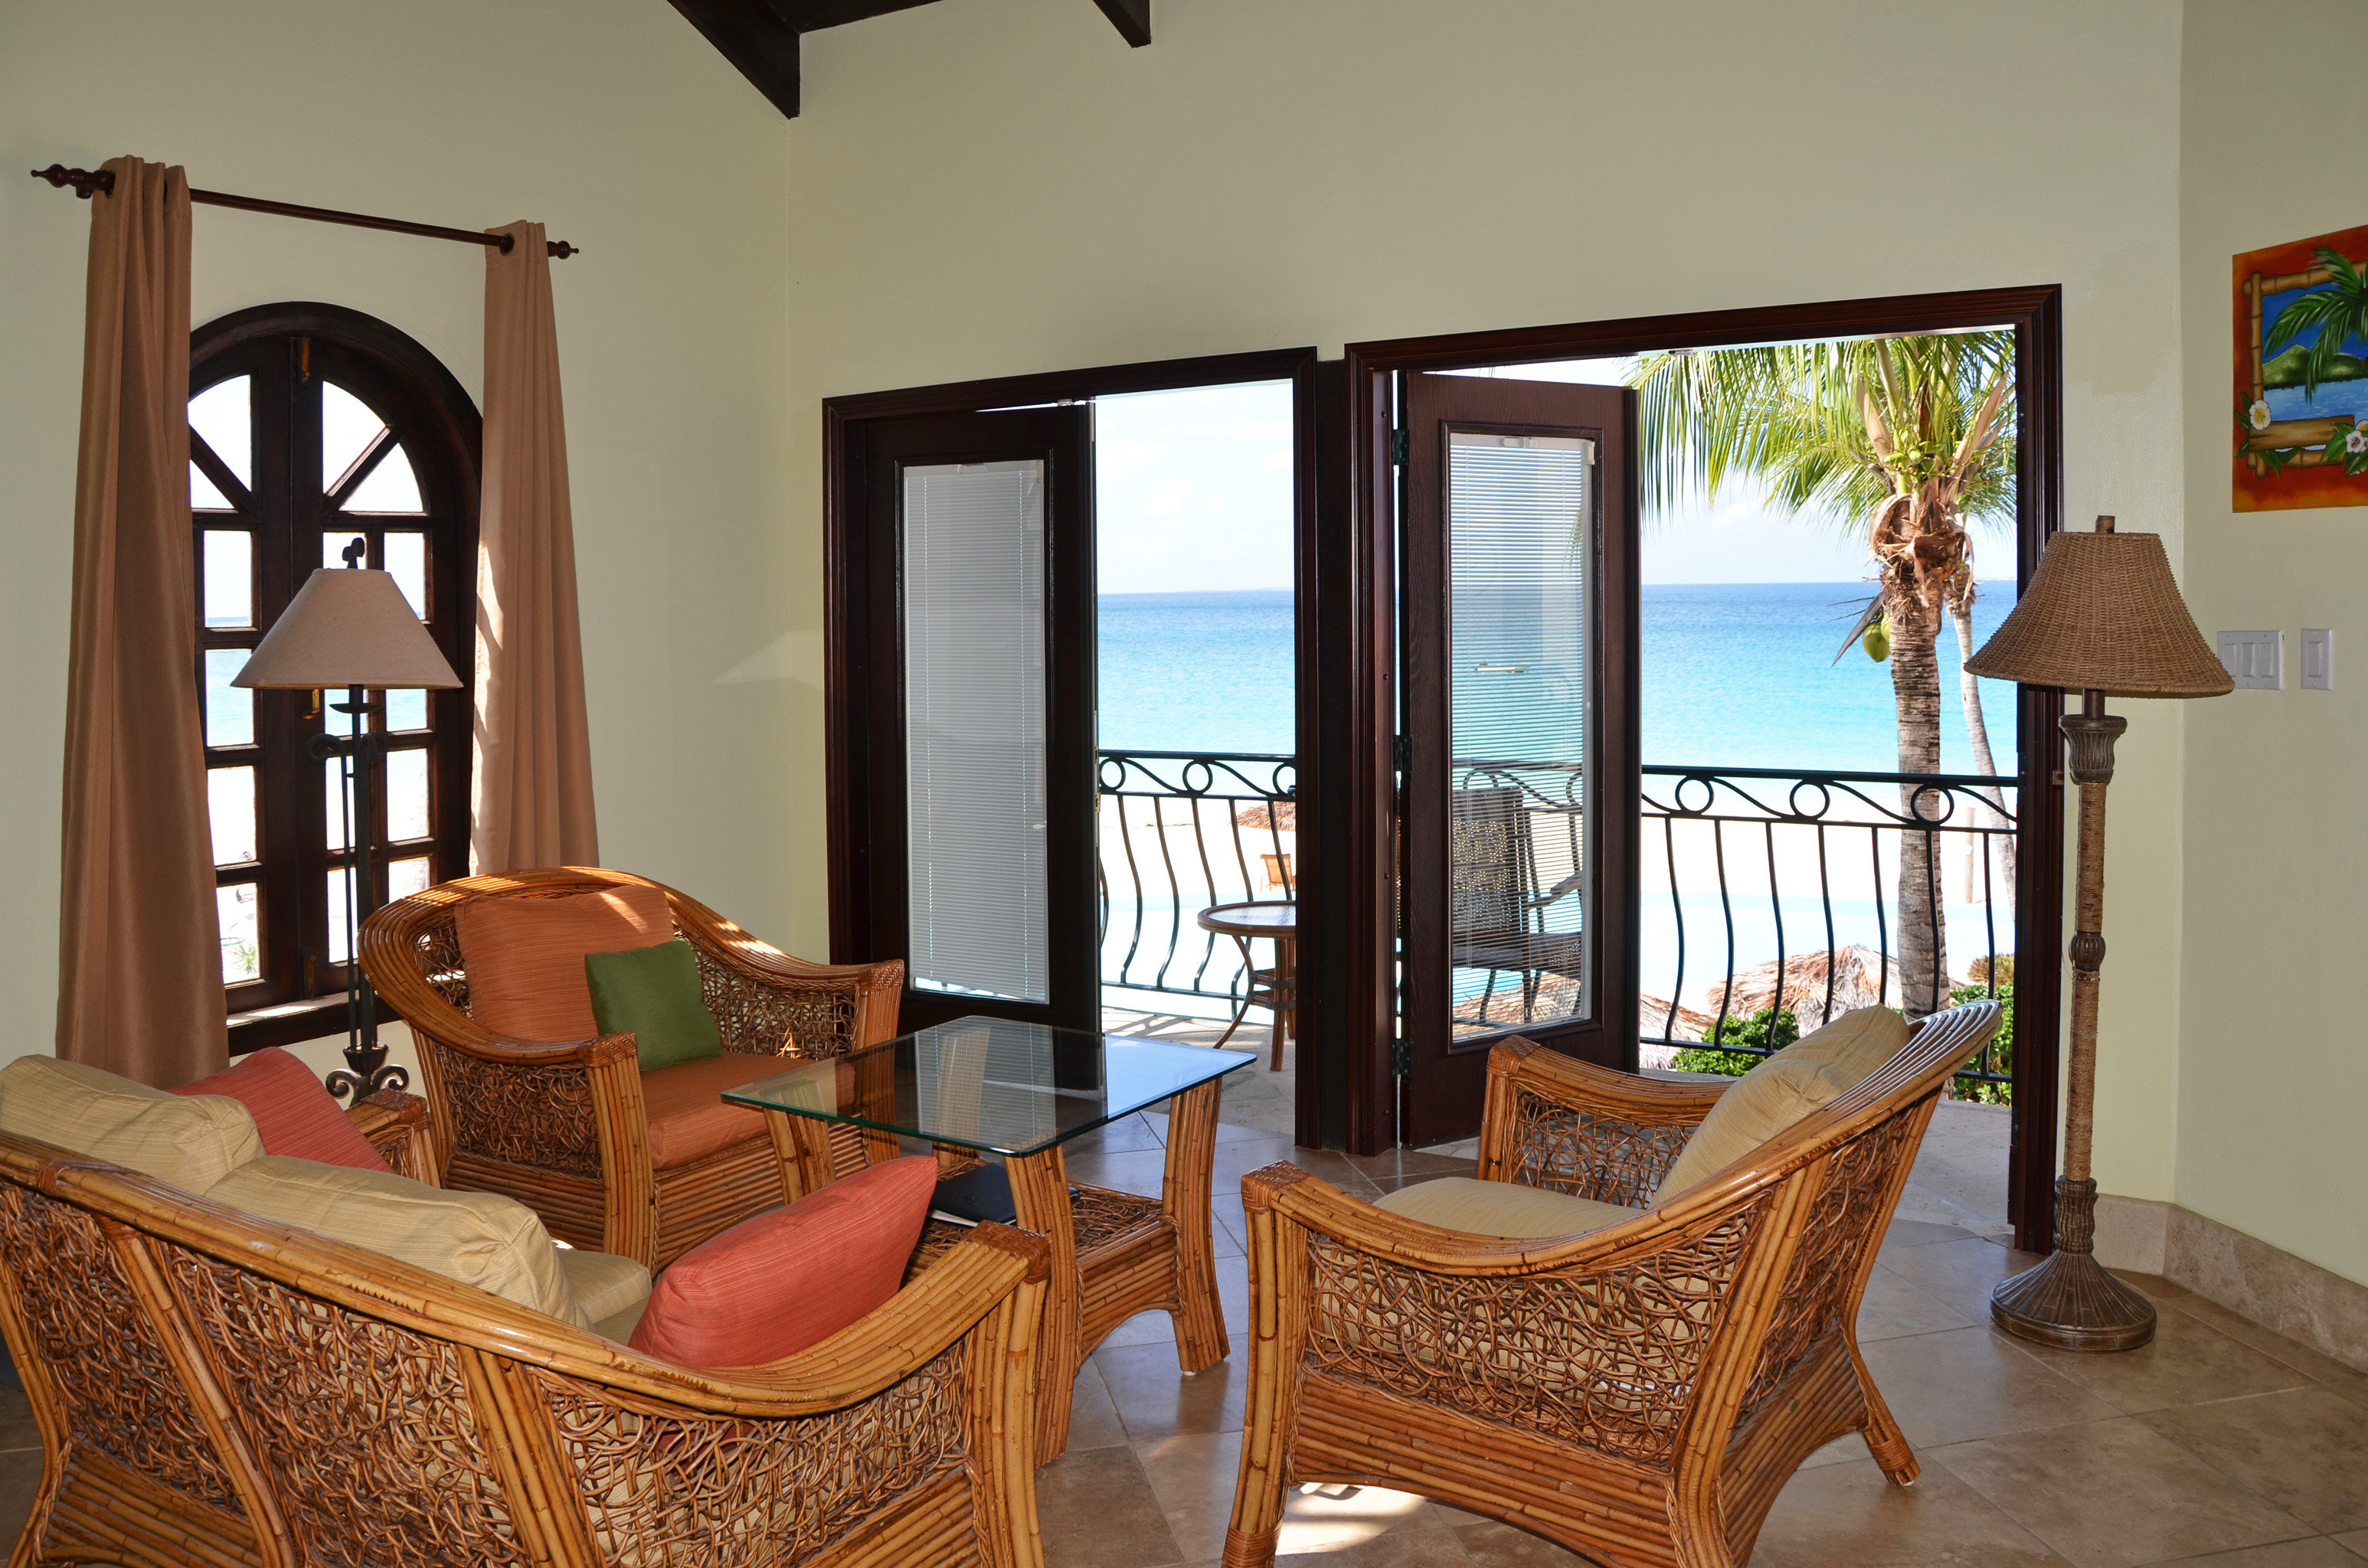 Beach Beachfront Exterior Lounge Ocean chair property living room Villa house home cottage Suite farmhouse mansion Resort hacienda Bedroom